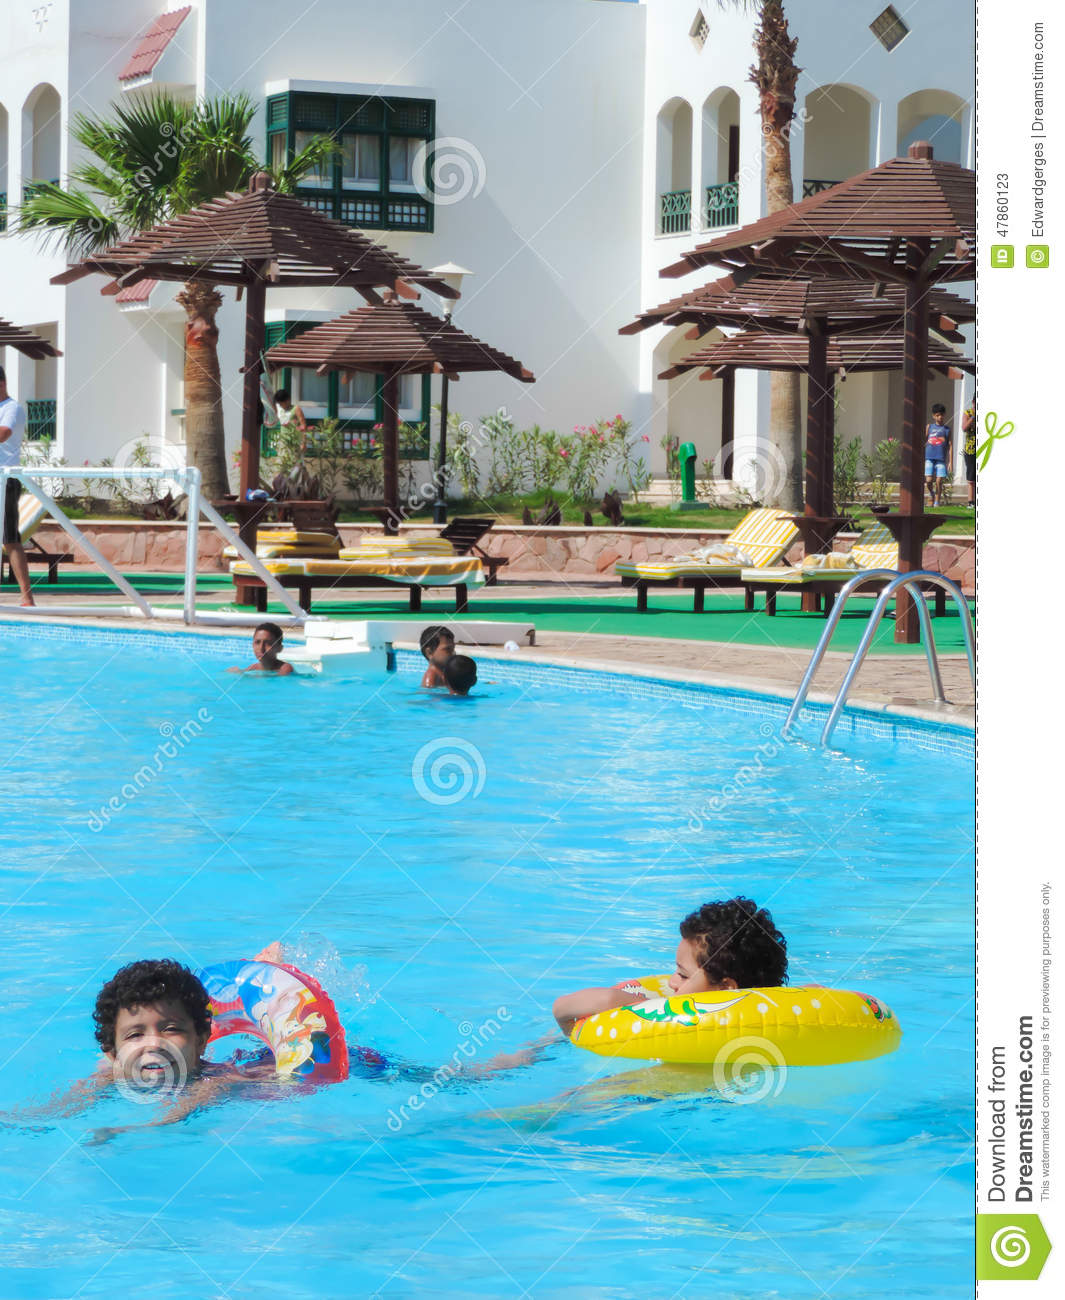 People in swimming pool editorial stock photo image of - Wetherby swimming pool swim times ...